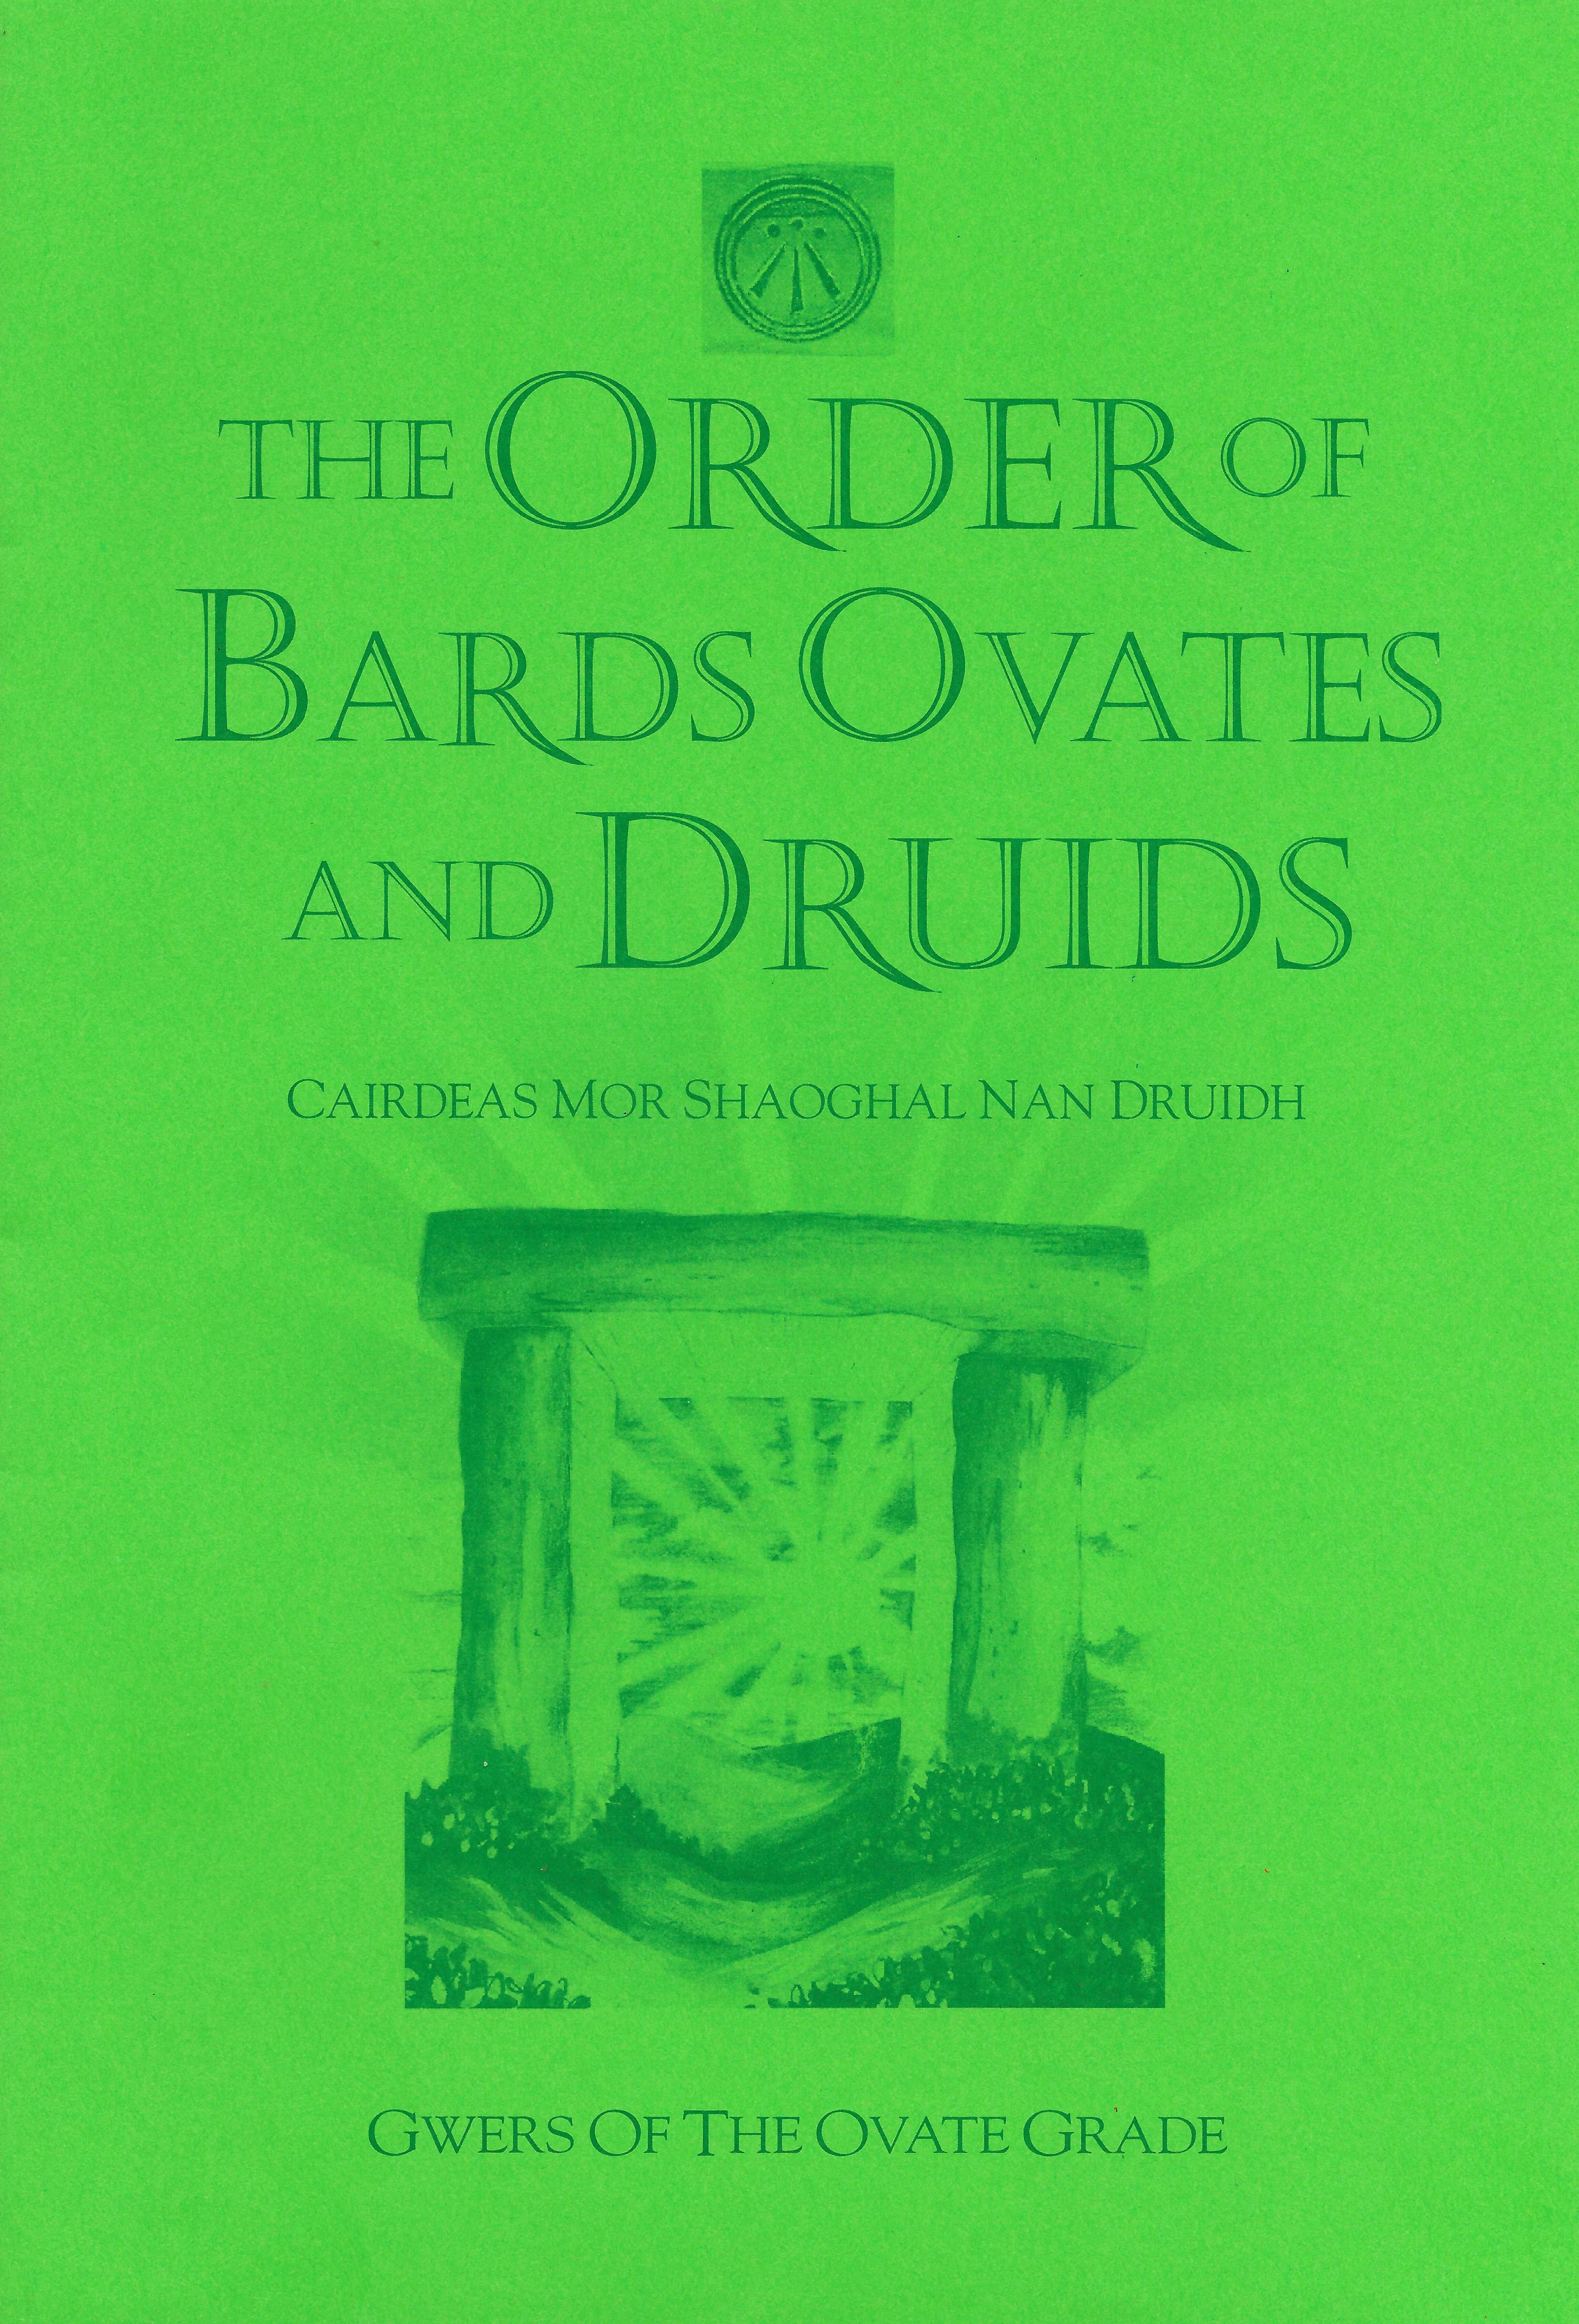 Gwers 35 - Ovate grade The Order of Bards, Ovates and Druids